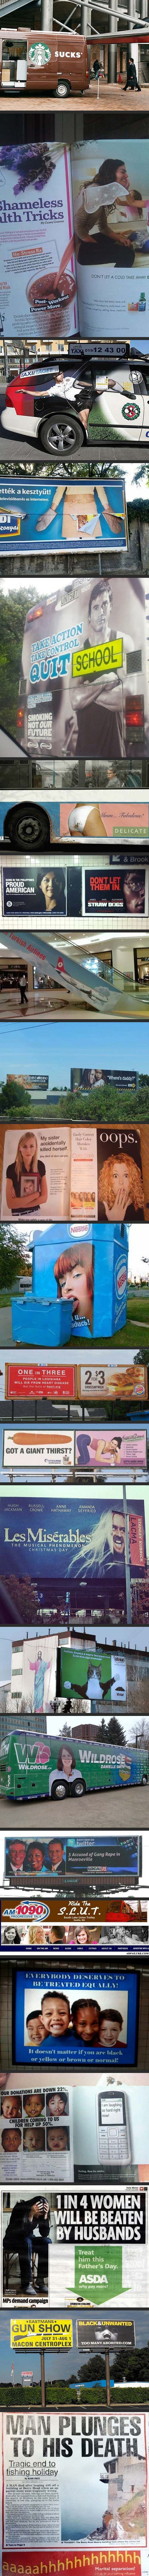 23 unfortunate advertising placements